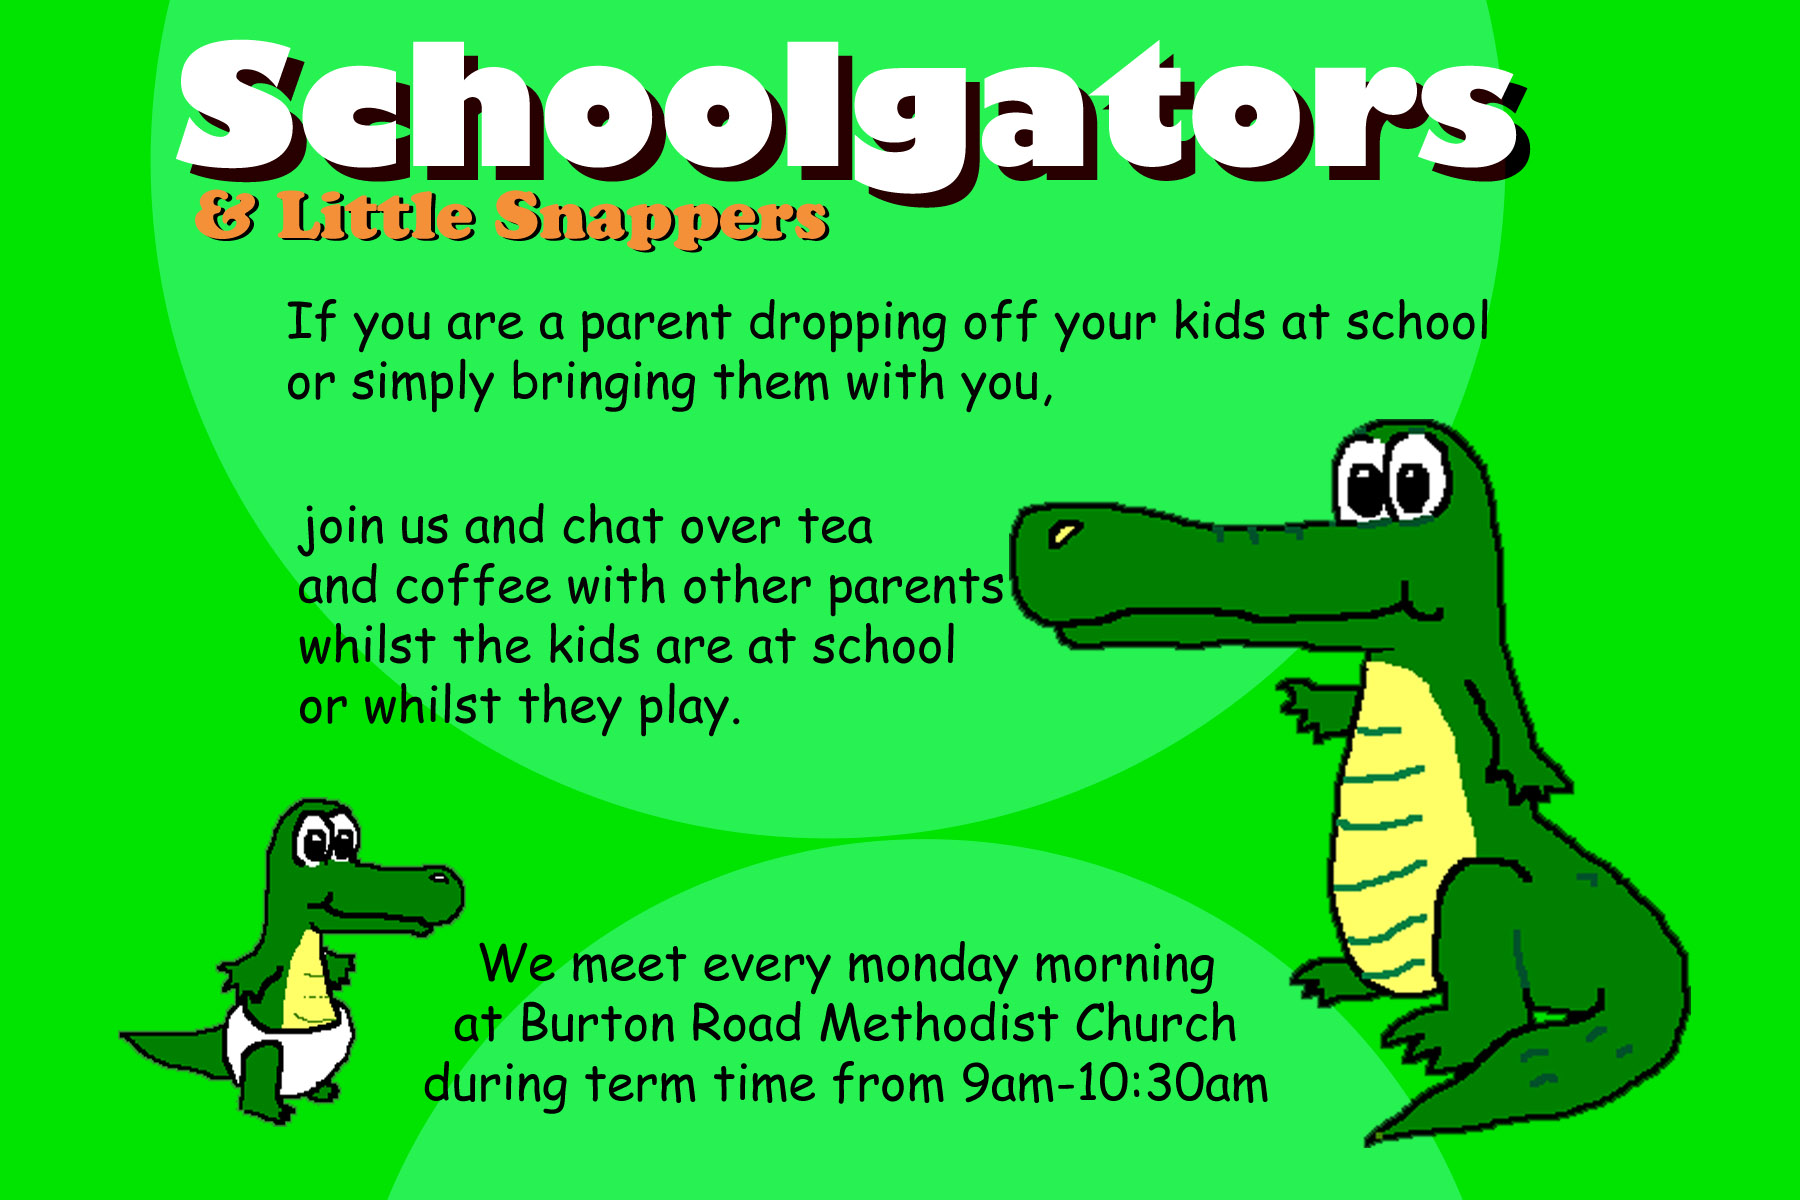 school gators